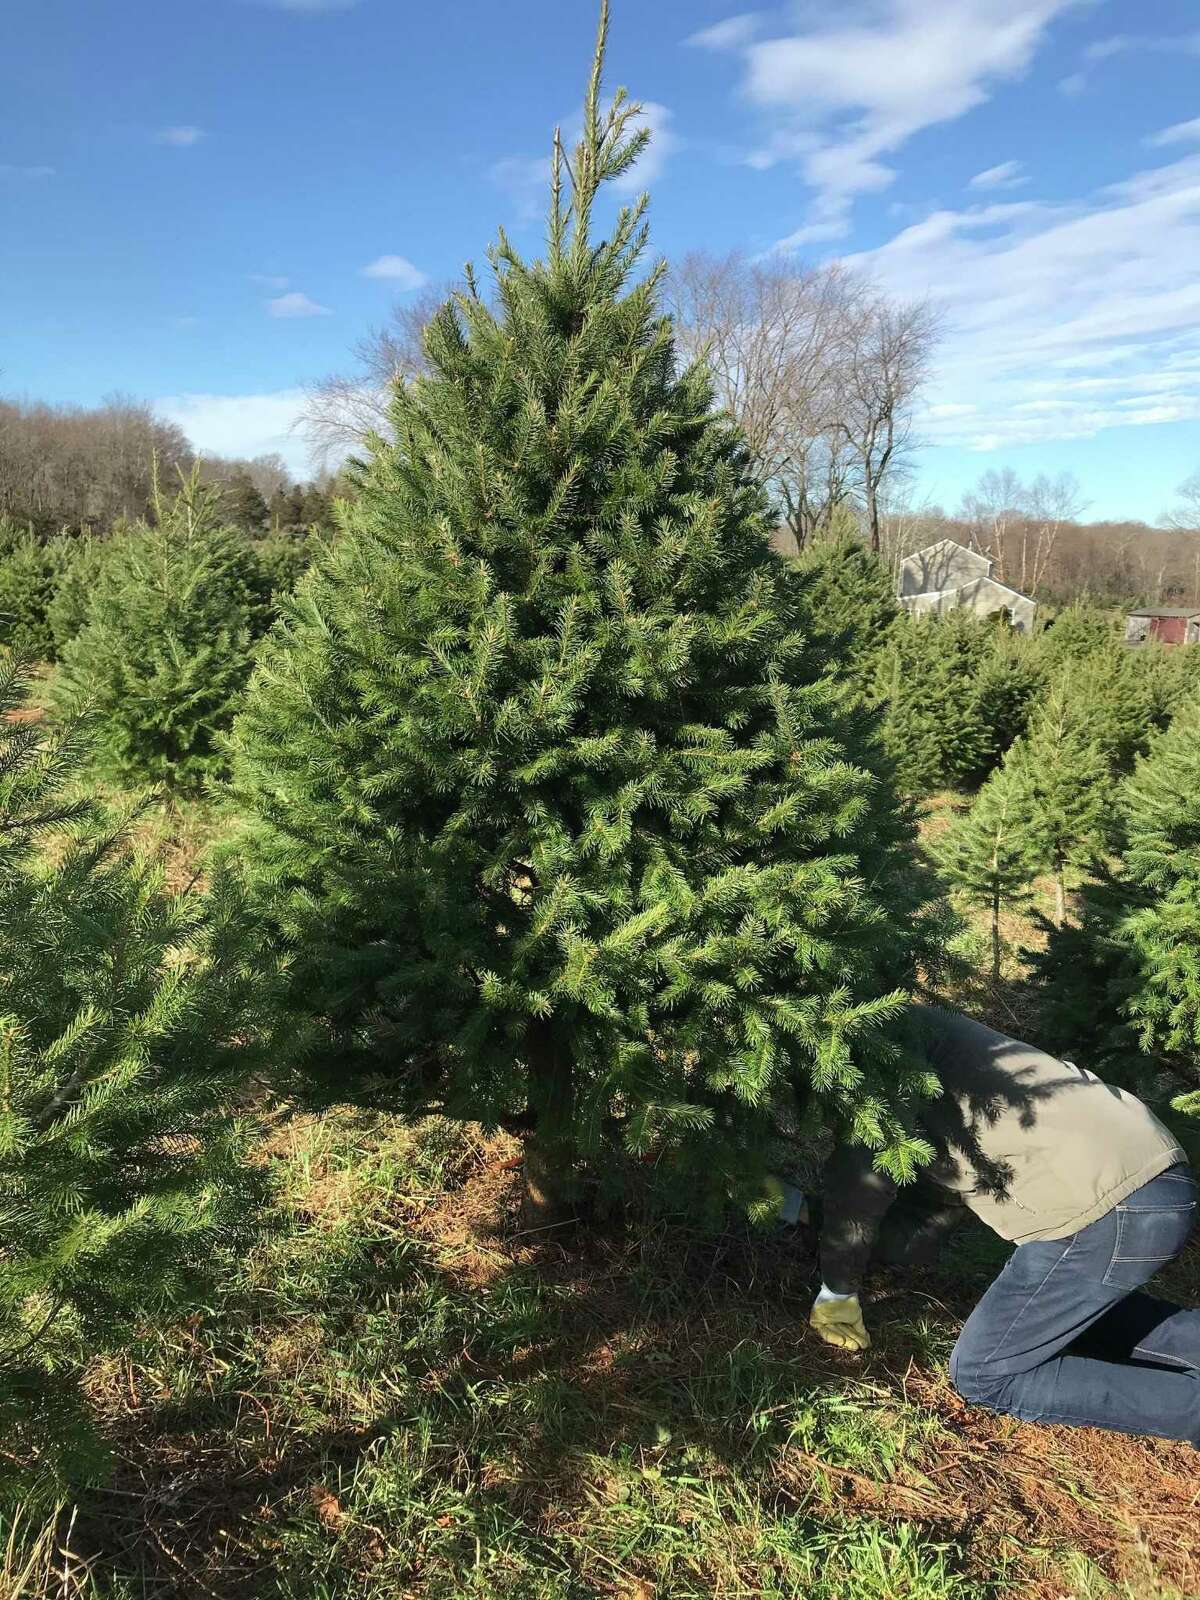 Tree farms like Maple Row said they've experienced an early rush as customers are eager to decorate their homes this year.